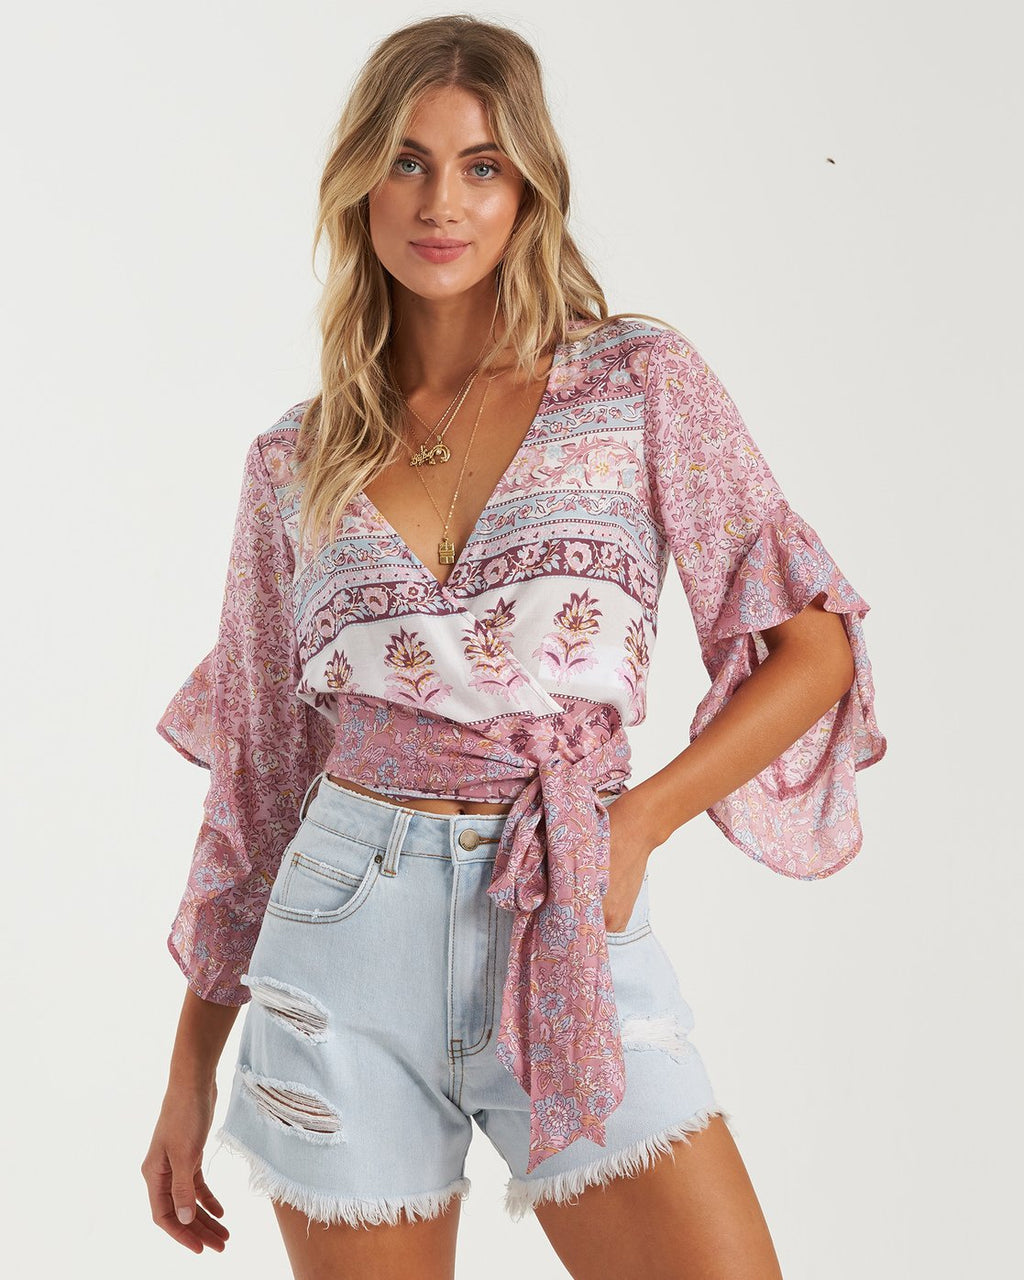 Summer Glow Top (MUL)